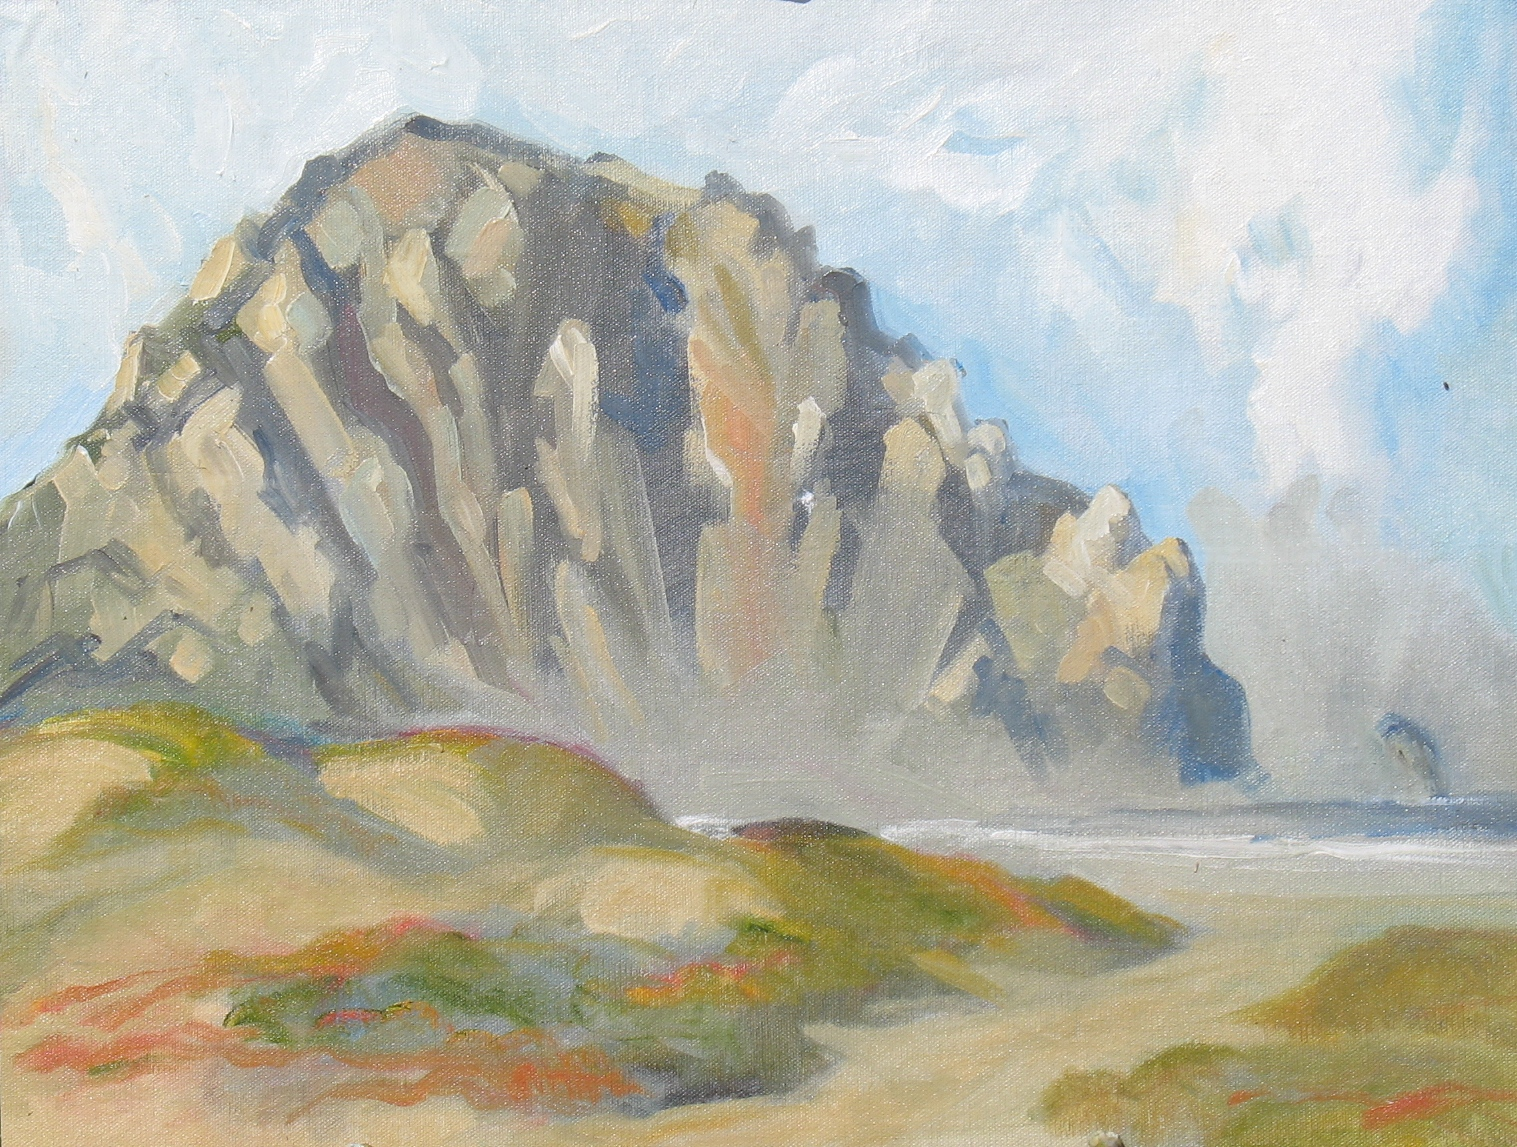 Morro Rock,  16 x 20 inches, oil on canvas - UNAVAILABLE